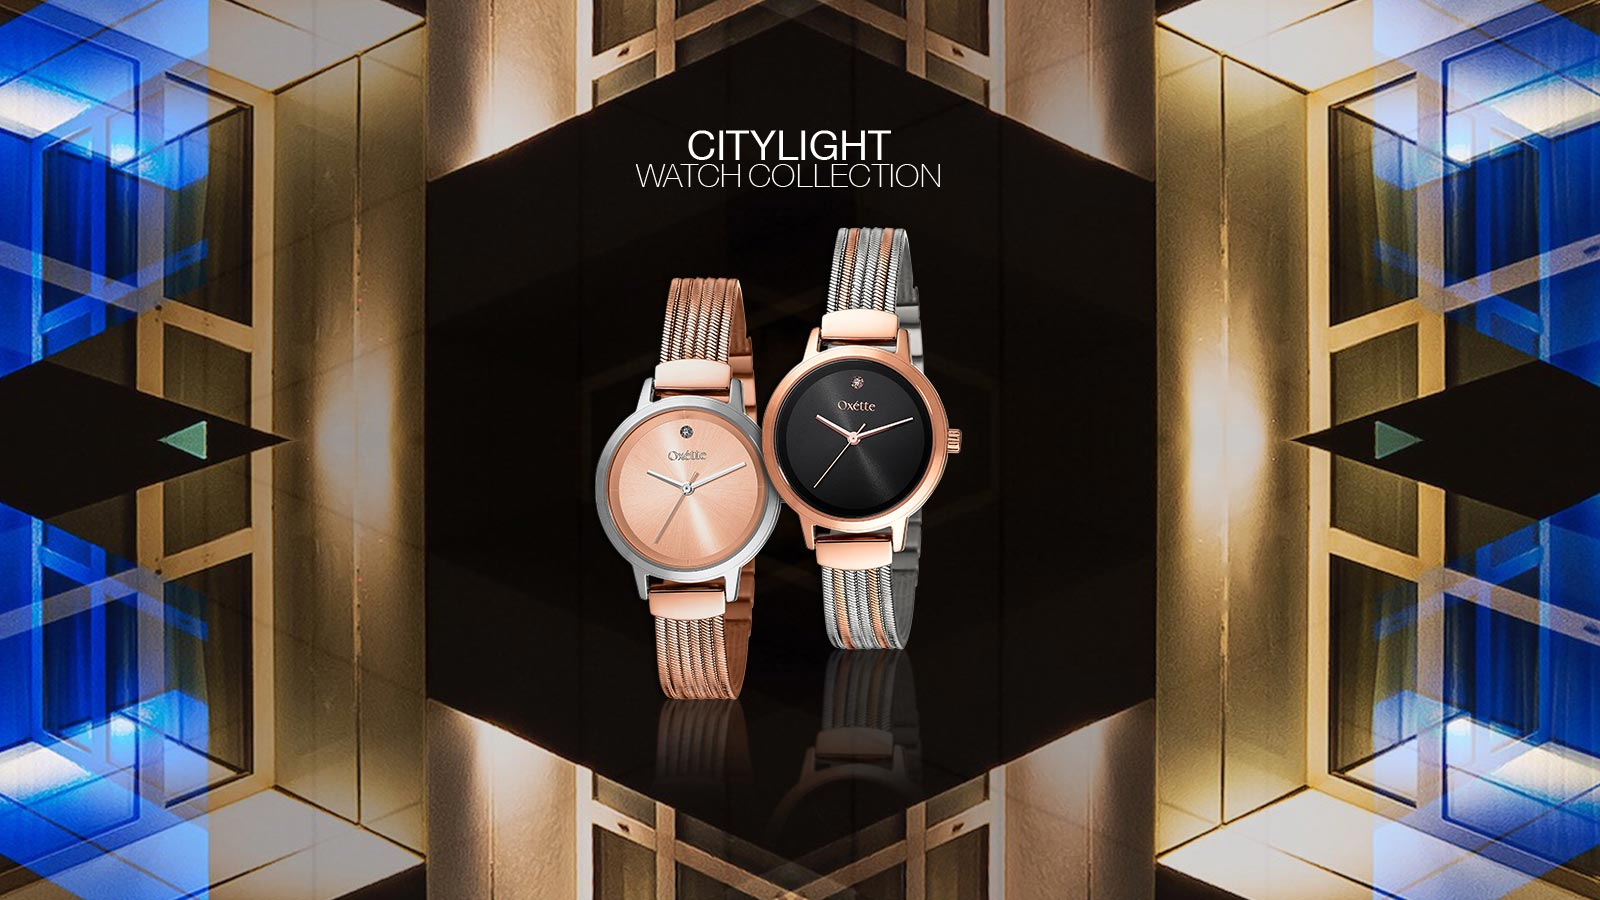 Citylight Watches - Oxette